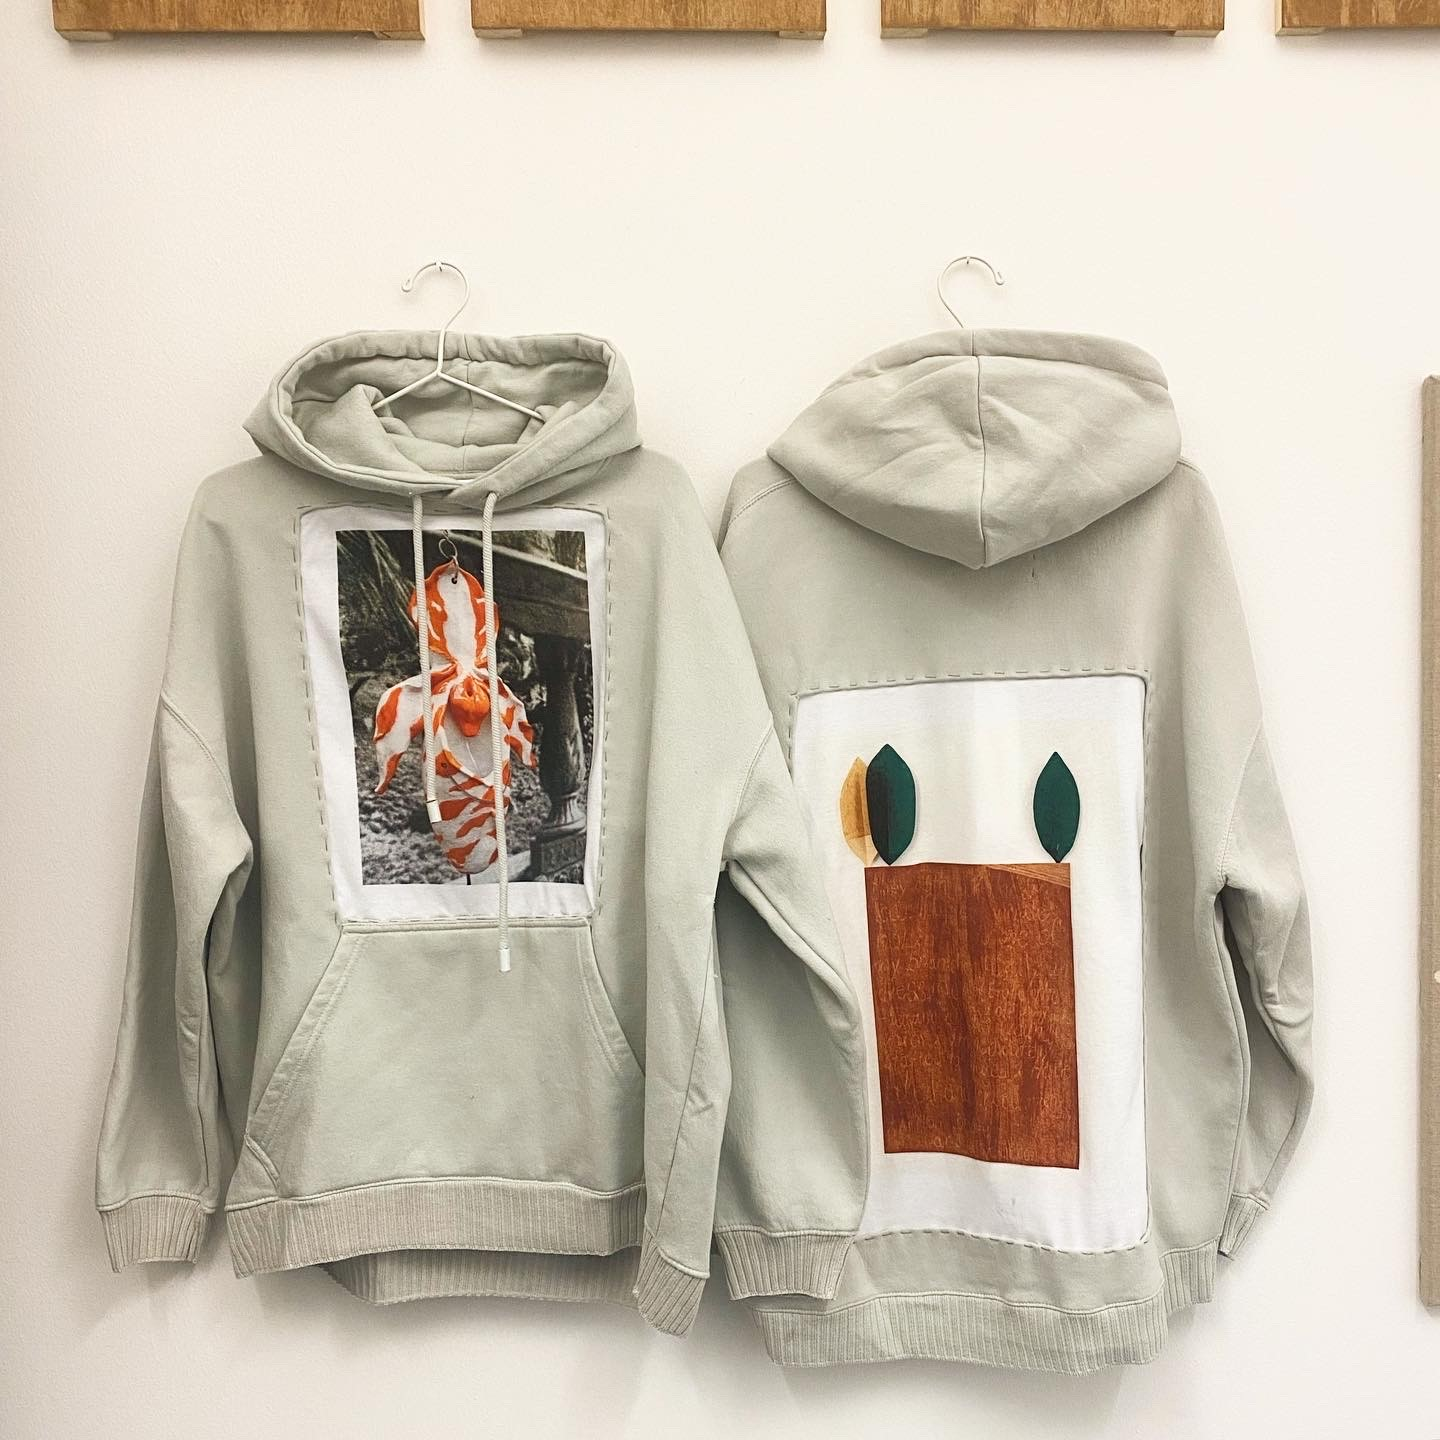 AddLabel: Twin Hoodies – Is D&G the same as Dolce & Gabbana? / Kristin Wenzel, David Reiber Otálora